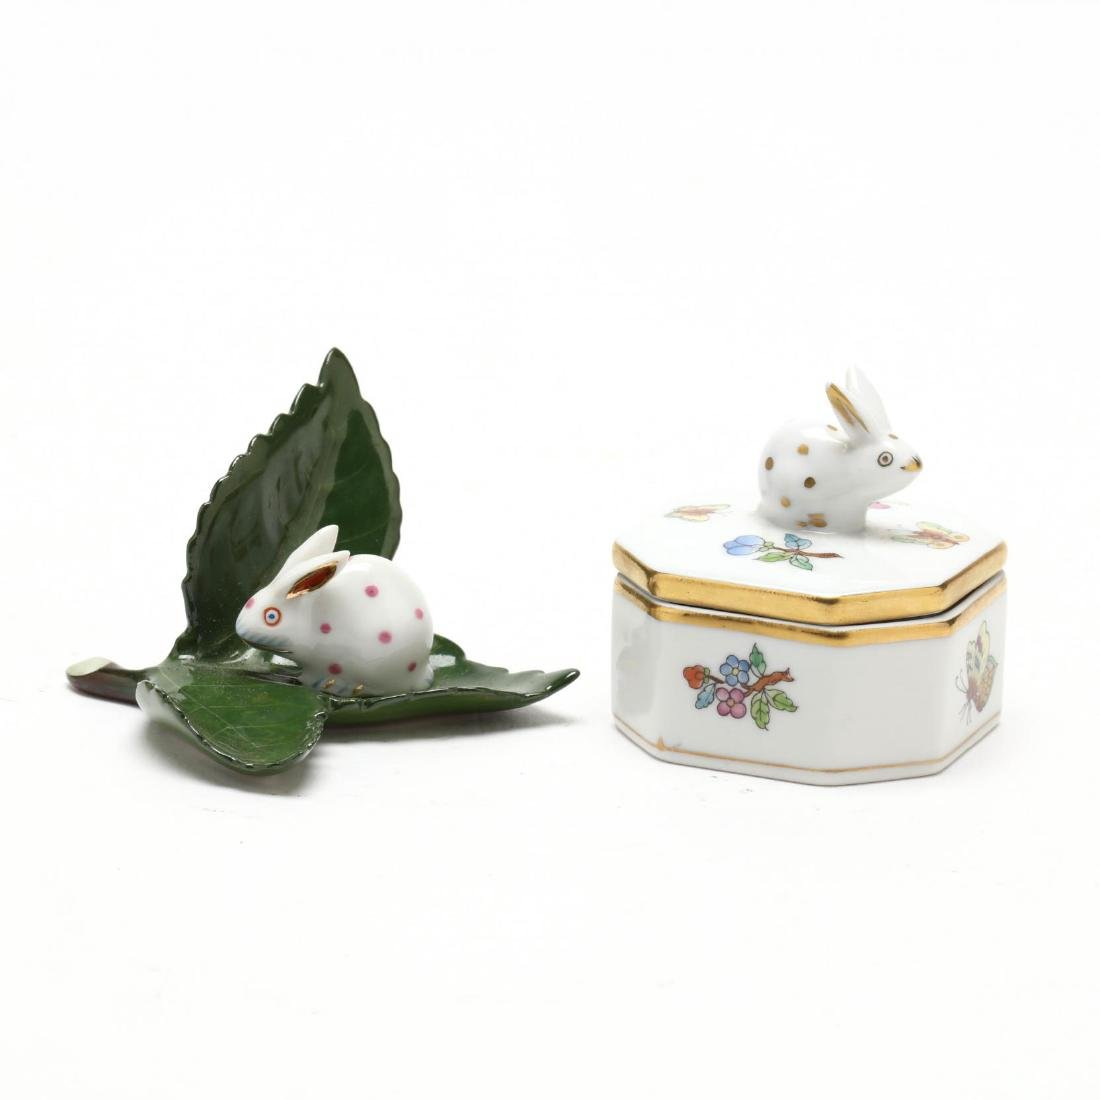 Two Small Herend Porcelain Objects